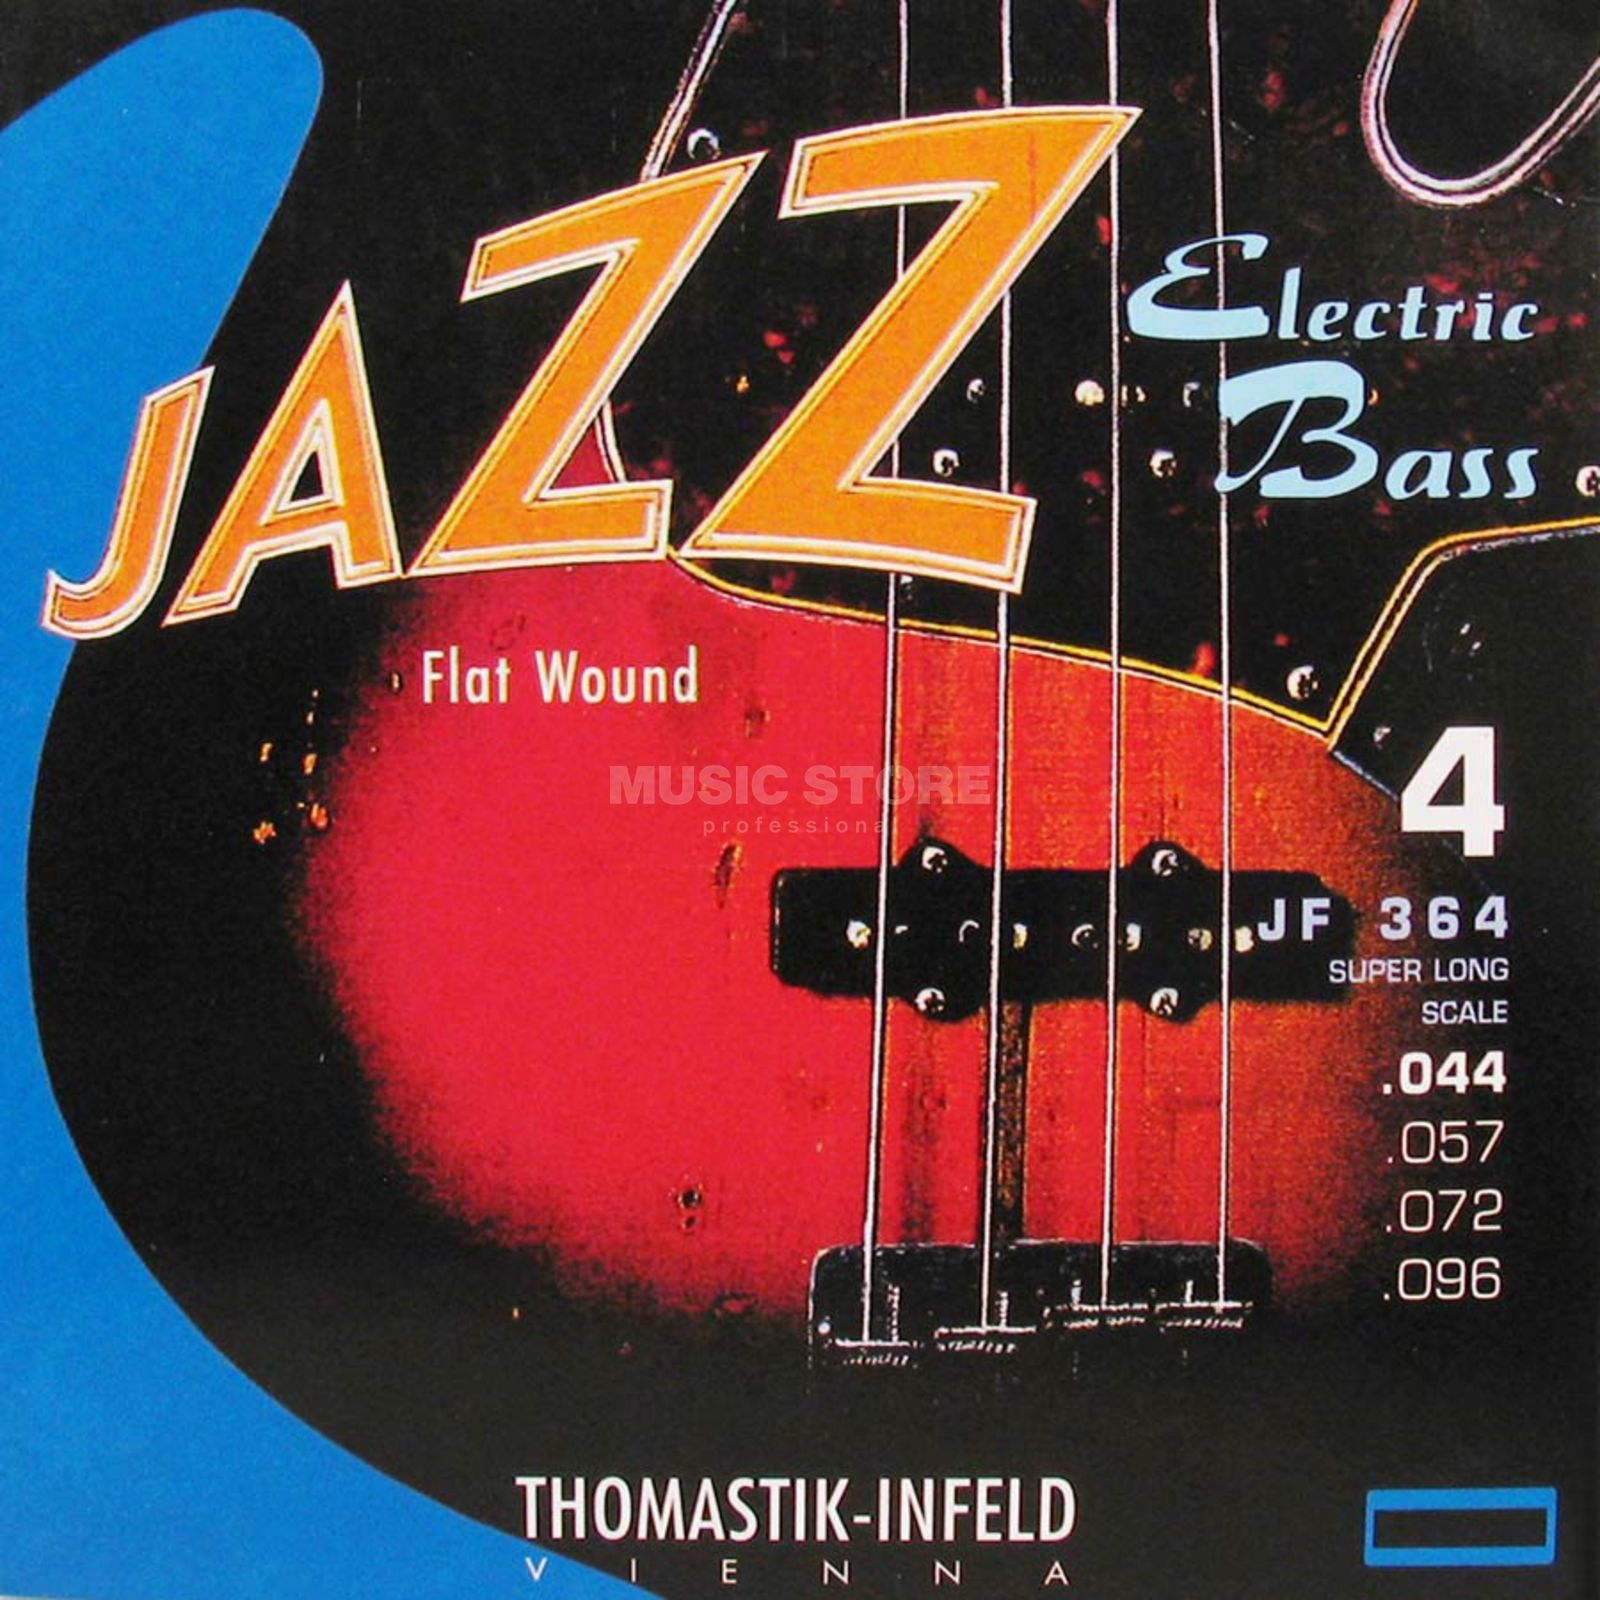 Thomastik 4 Bass Strings JF 364 44-96 Nickel Flat Wound Изображение товара